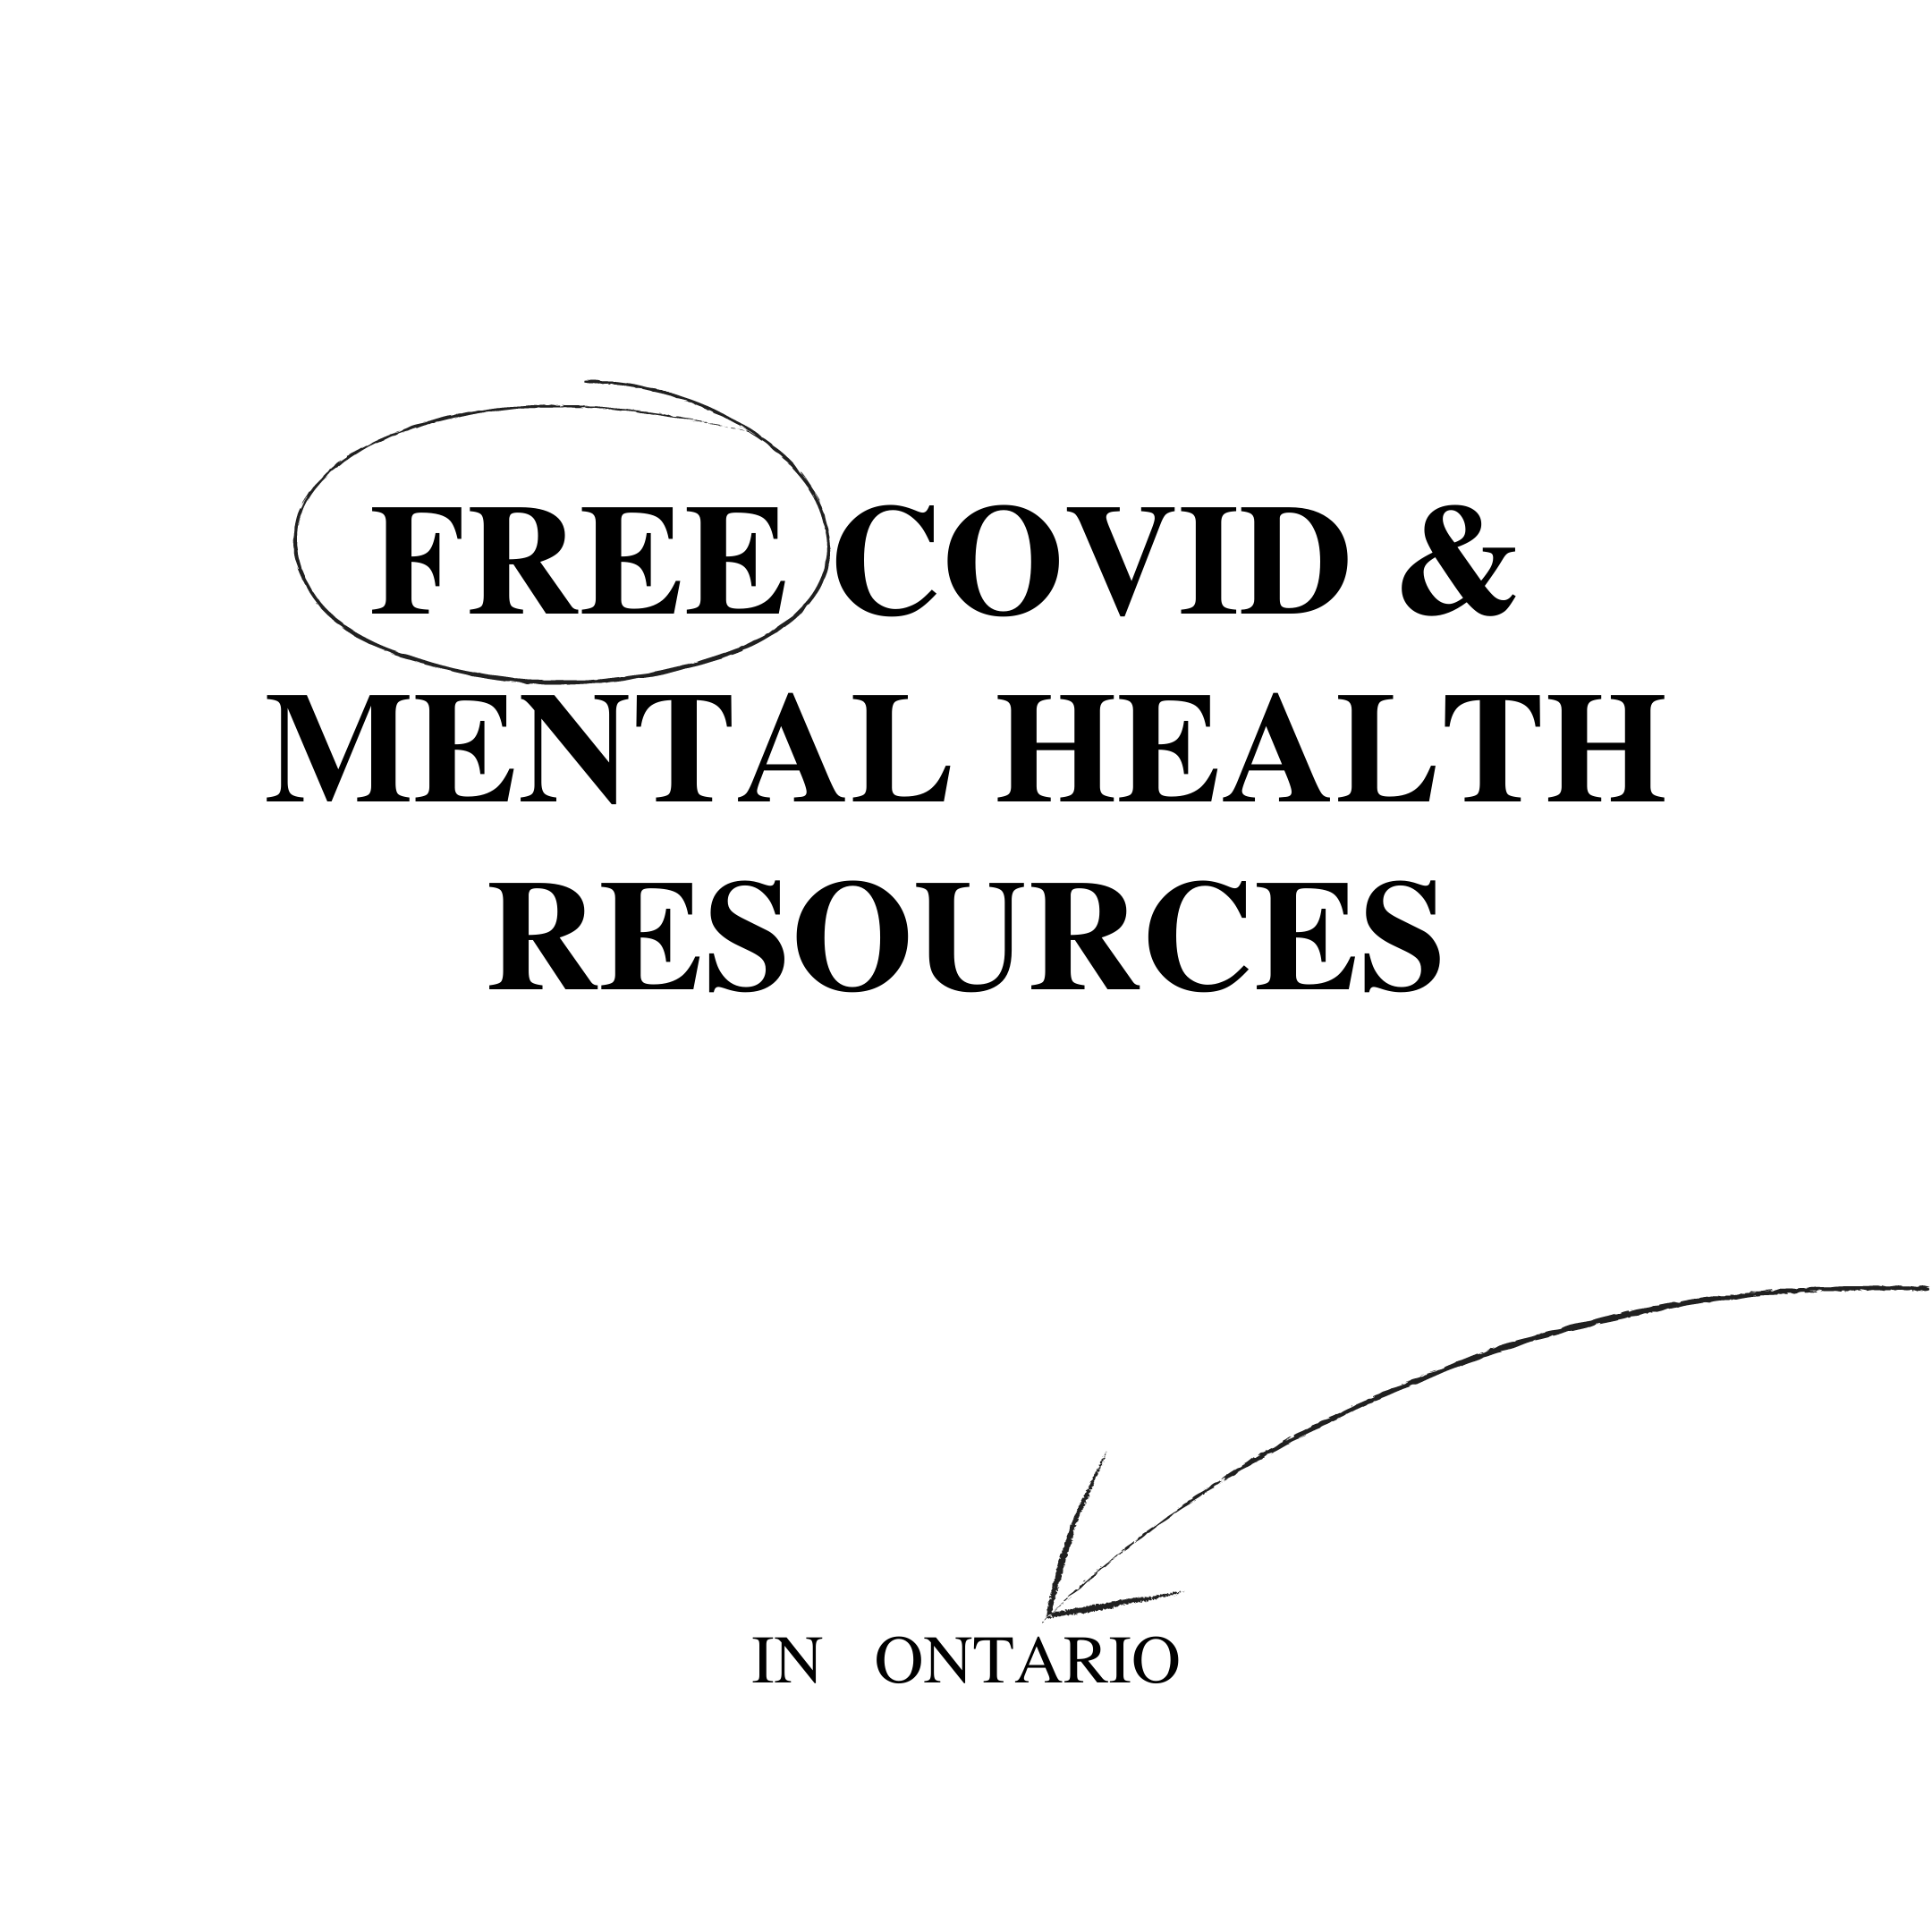 Free Covid and Mental Health Resources in Ontario title page